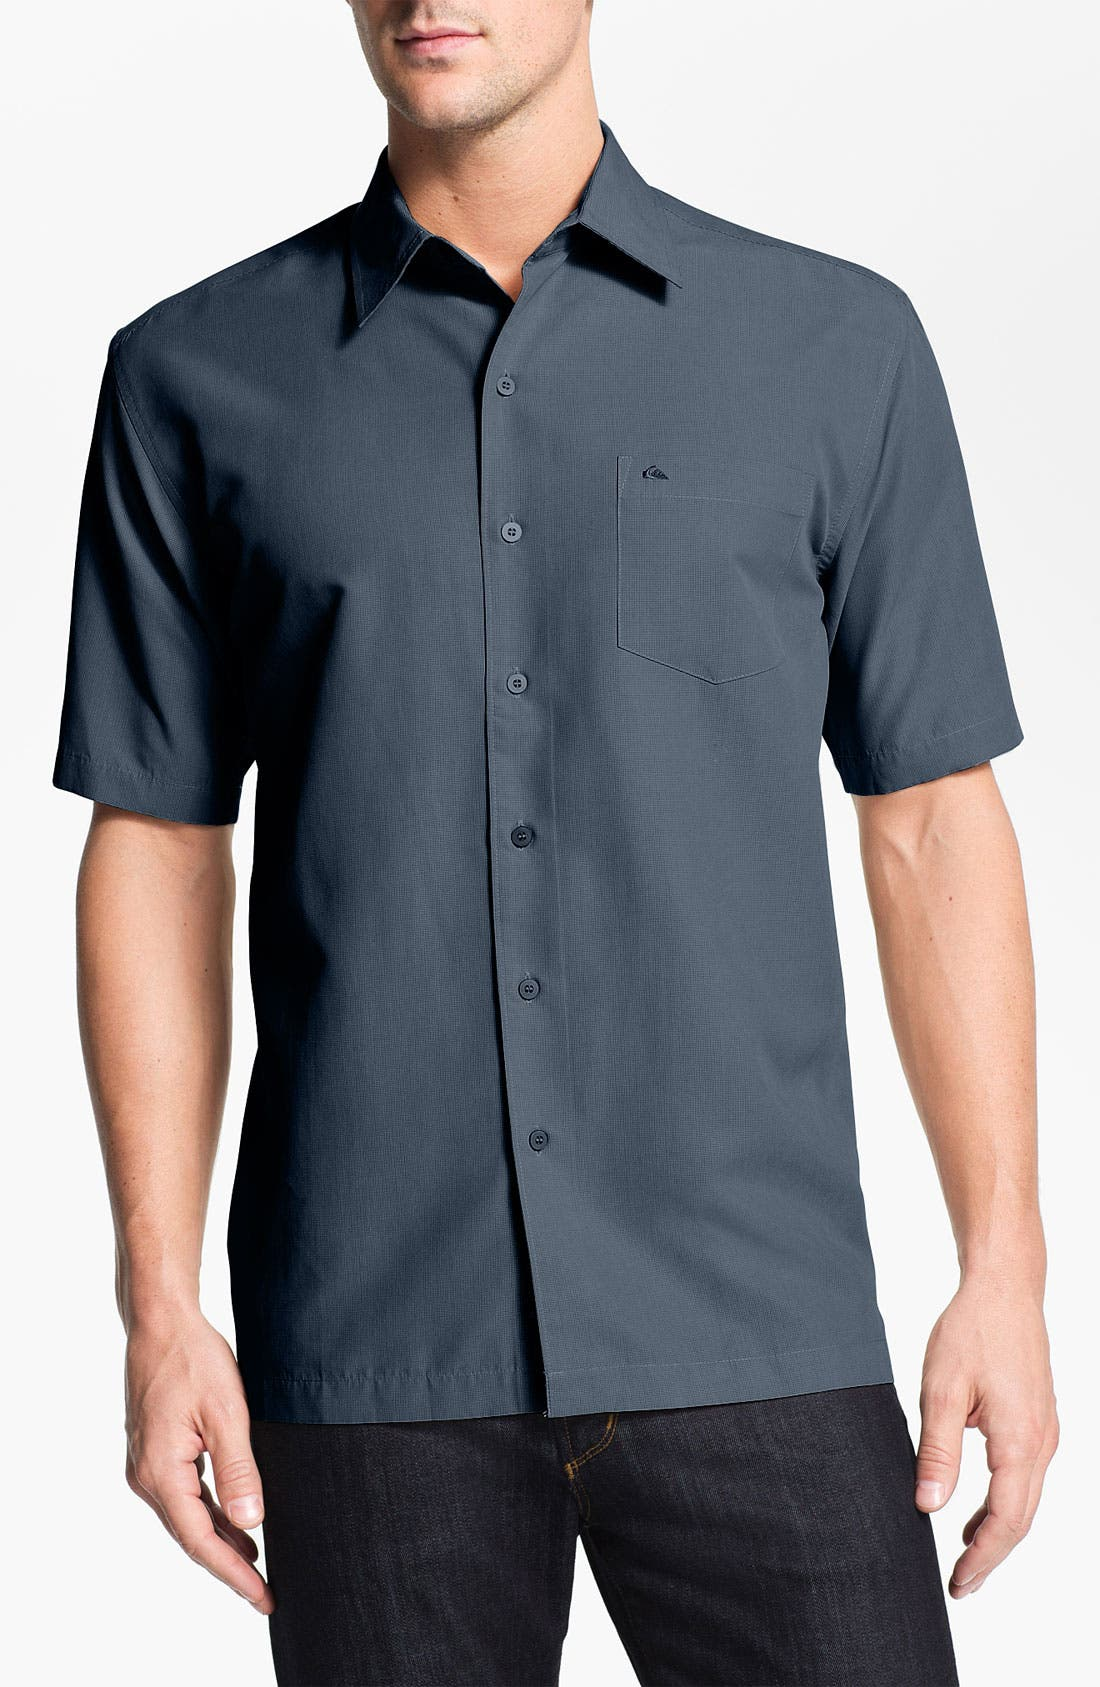 Alternate Image 1 Selected - Quiksilver 'Encinitas' Woven Shirt